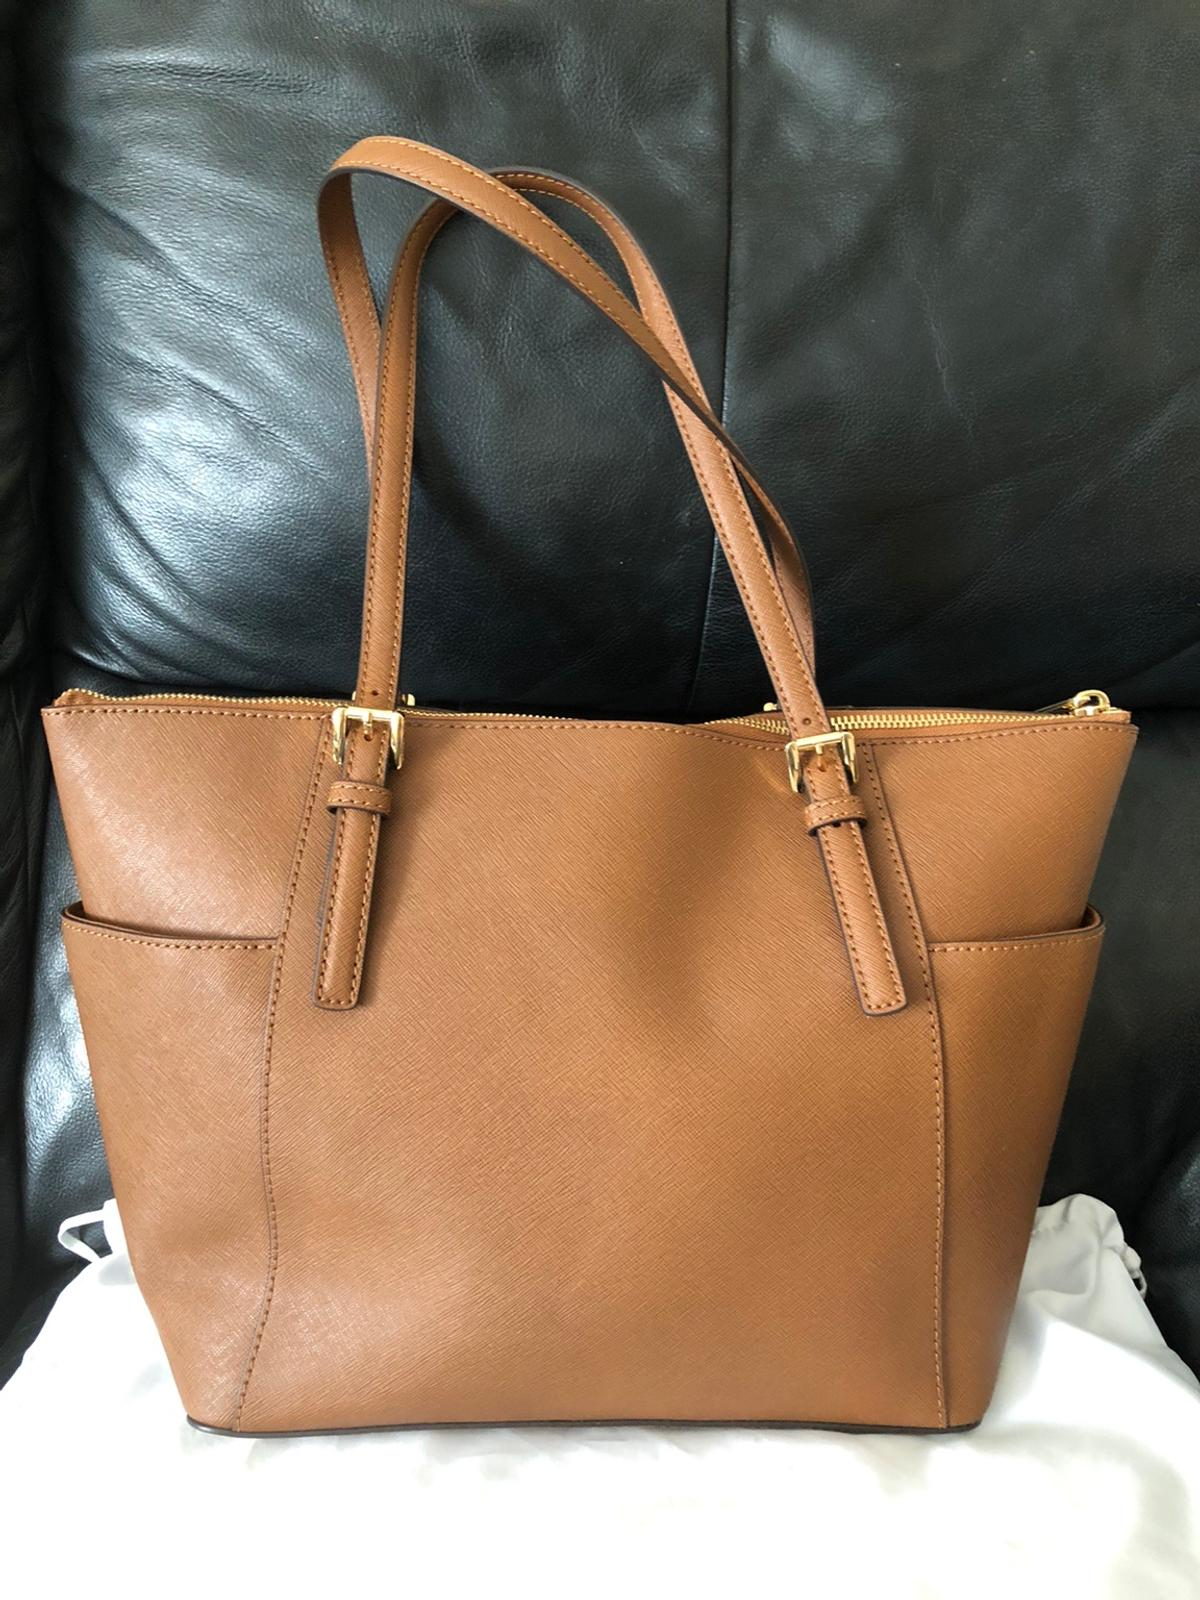 NO OFFERS ACCEPTED Brand-new bag still tagged Michael kors jet set saffiano leather top zip tote bag authentic from Michael kors store.My husband got me this a few years ago but it's just been left in the cupboard hence sale (You can look on line for future details) Paid £220 still currently in store for £225 W-15 H=10 D=4.5 inches Collection b712je Post extra £5